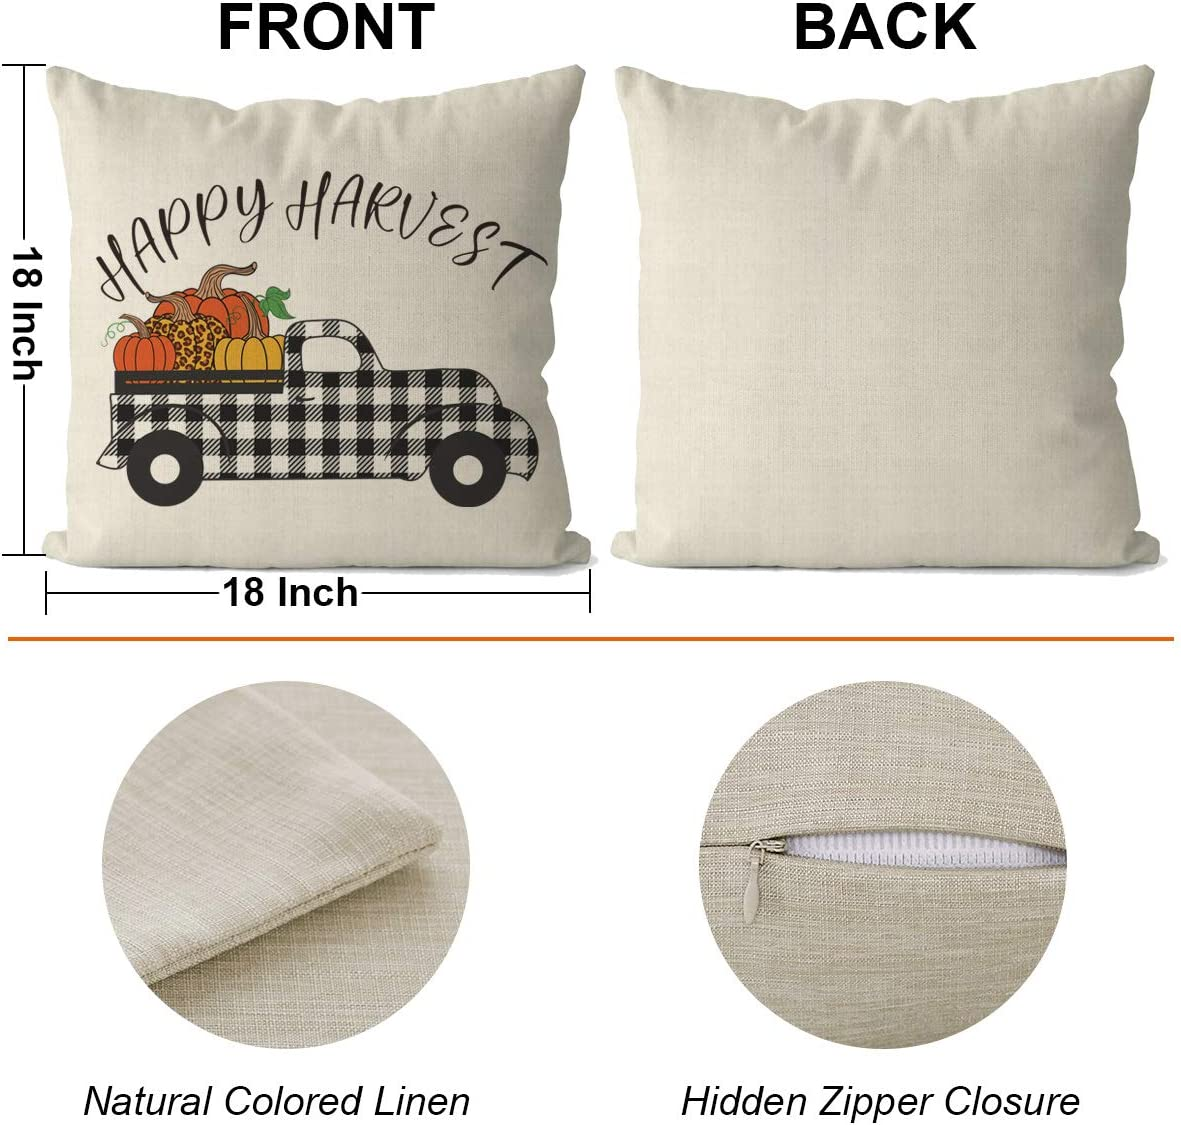 Fall Decor for Home Dazonge Thanksgiving Decorations for Home Set of 4 Pumpkin Farmhouse Throw Pillowcase Buffalo Checked Plaids Fall Pillow Covers 18 x 18 Inches